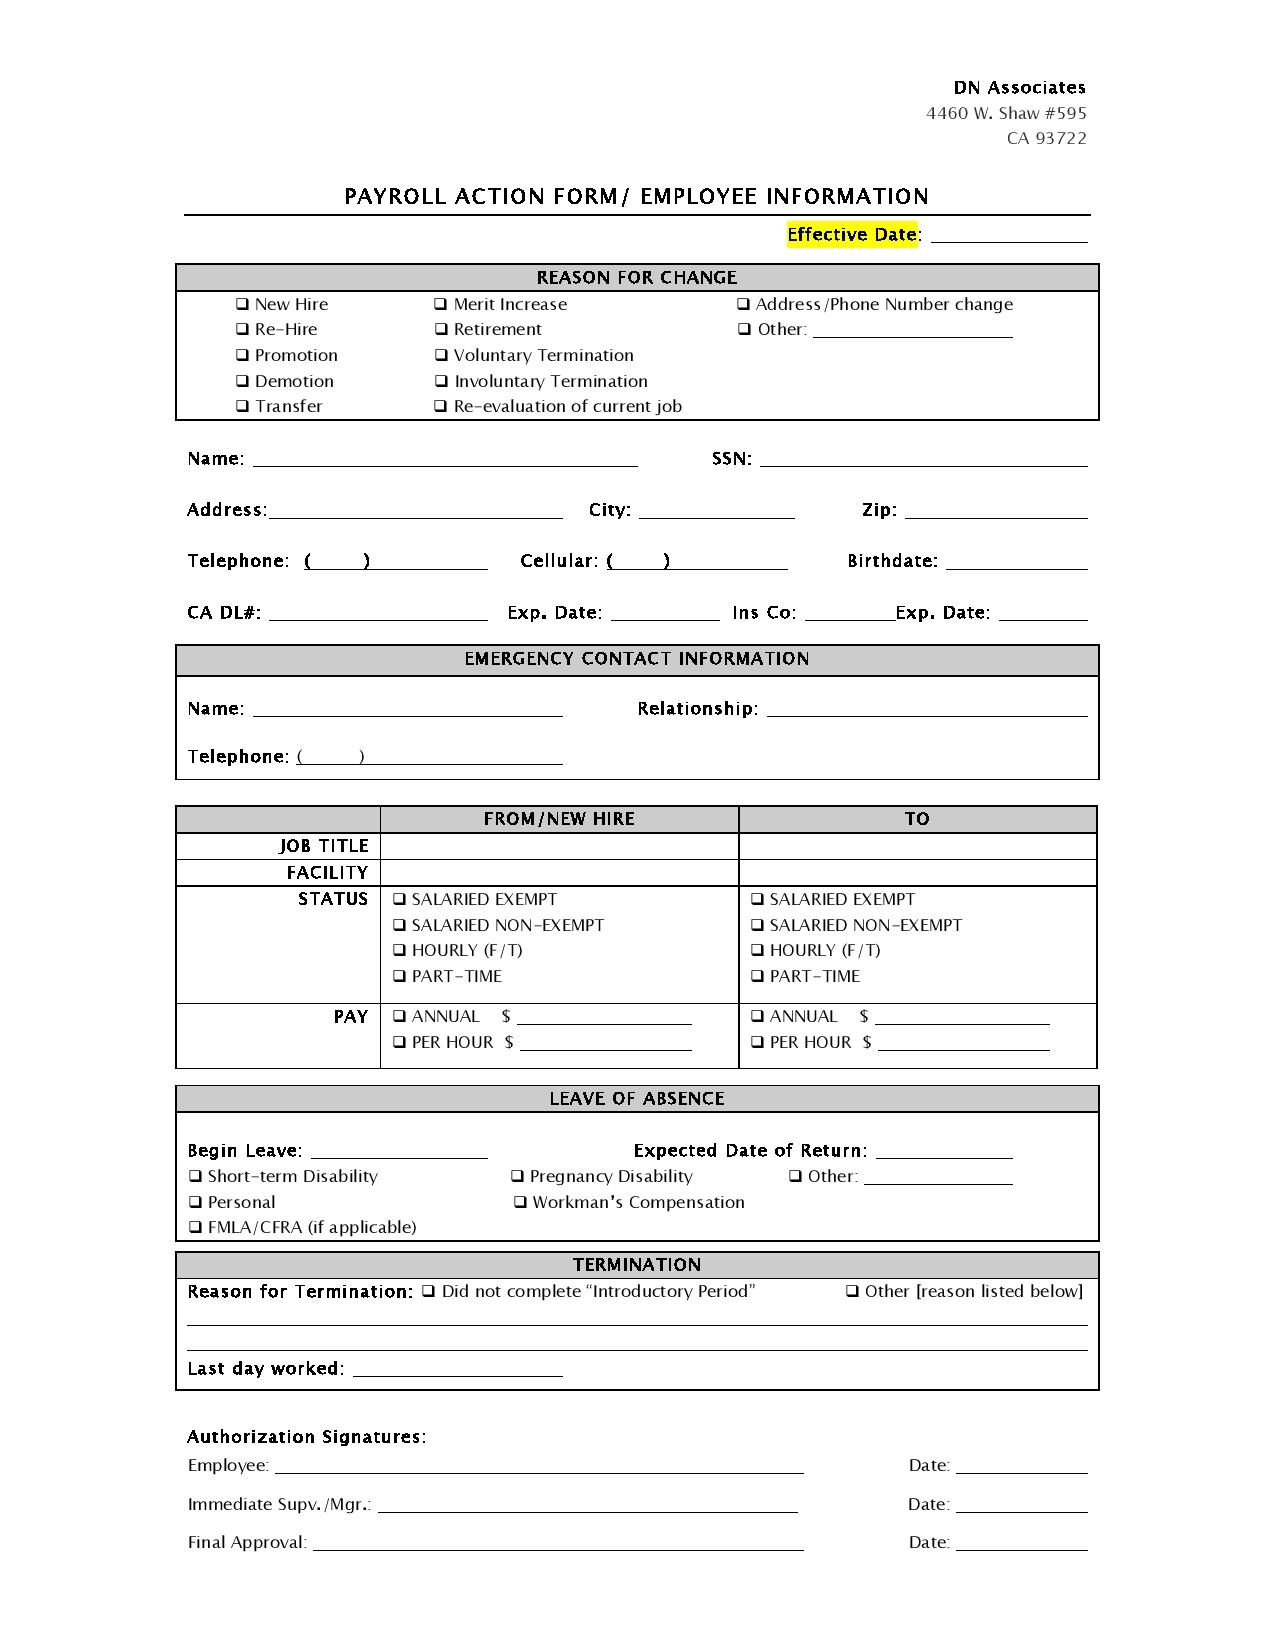 payroll action form employee information page 0011